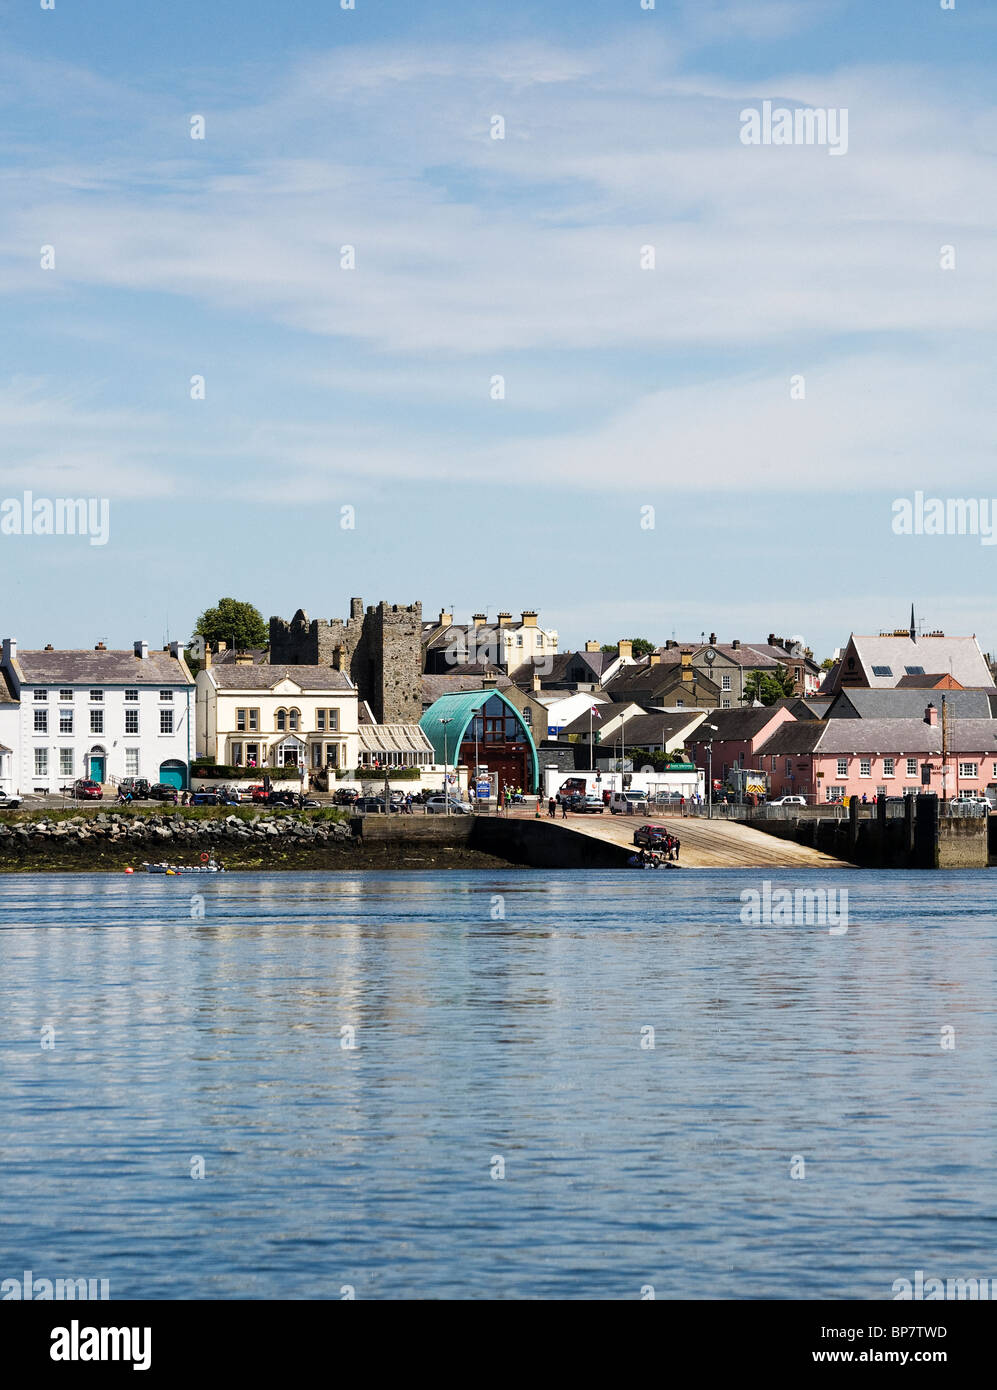 Portaferry, County Down, Northern Ireland - Stock Image